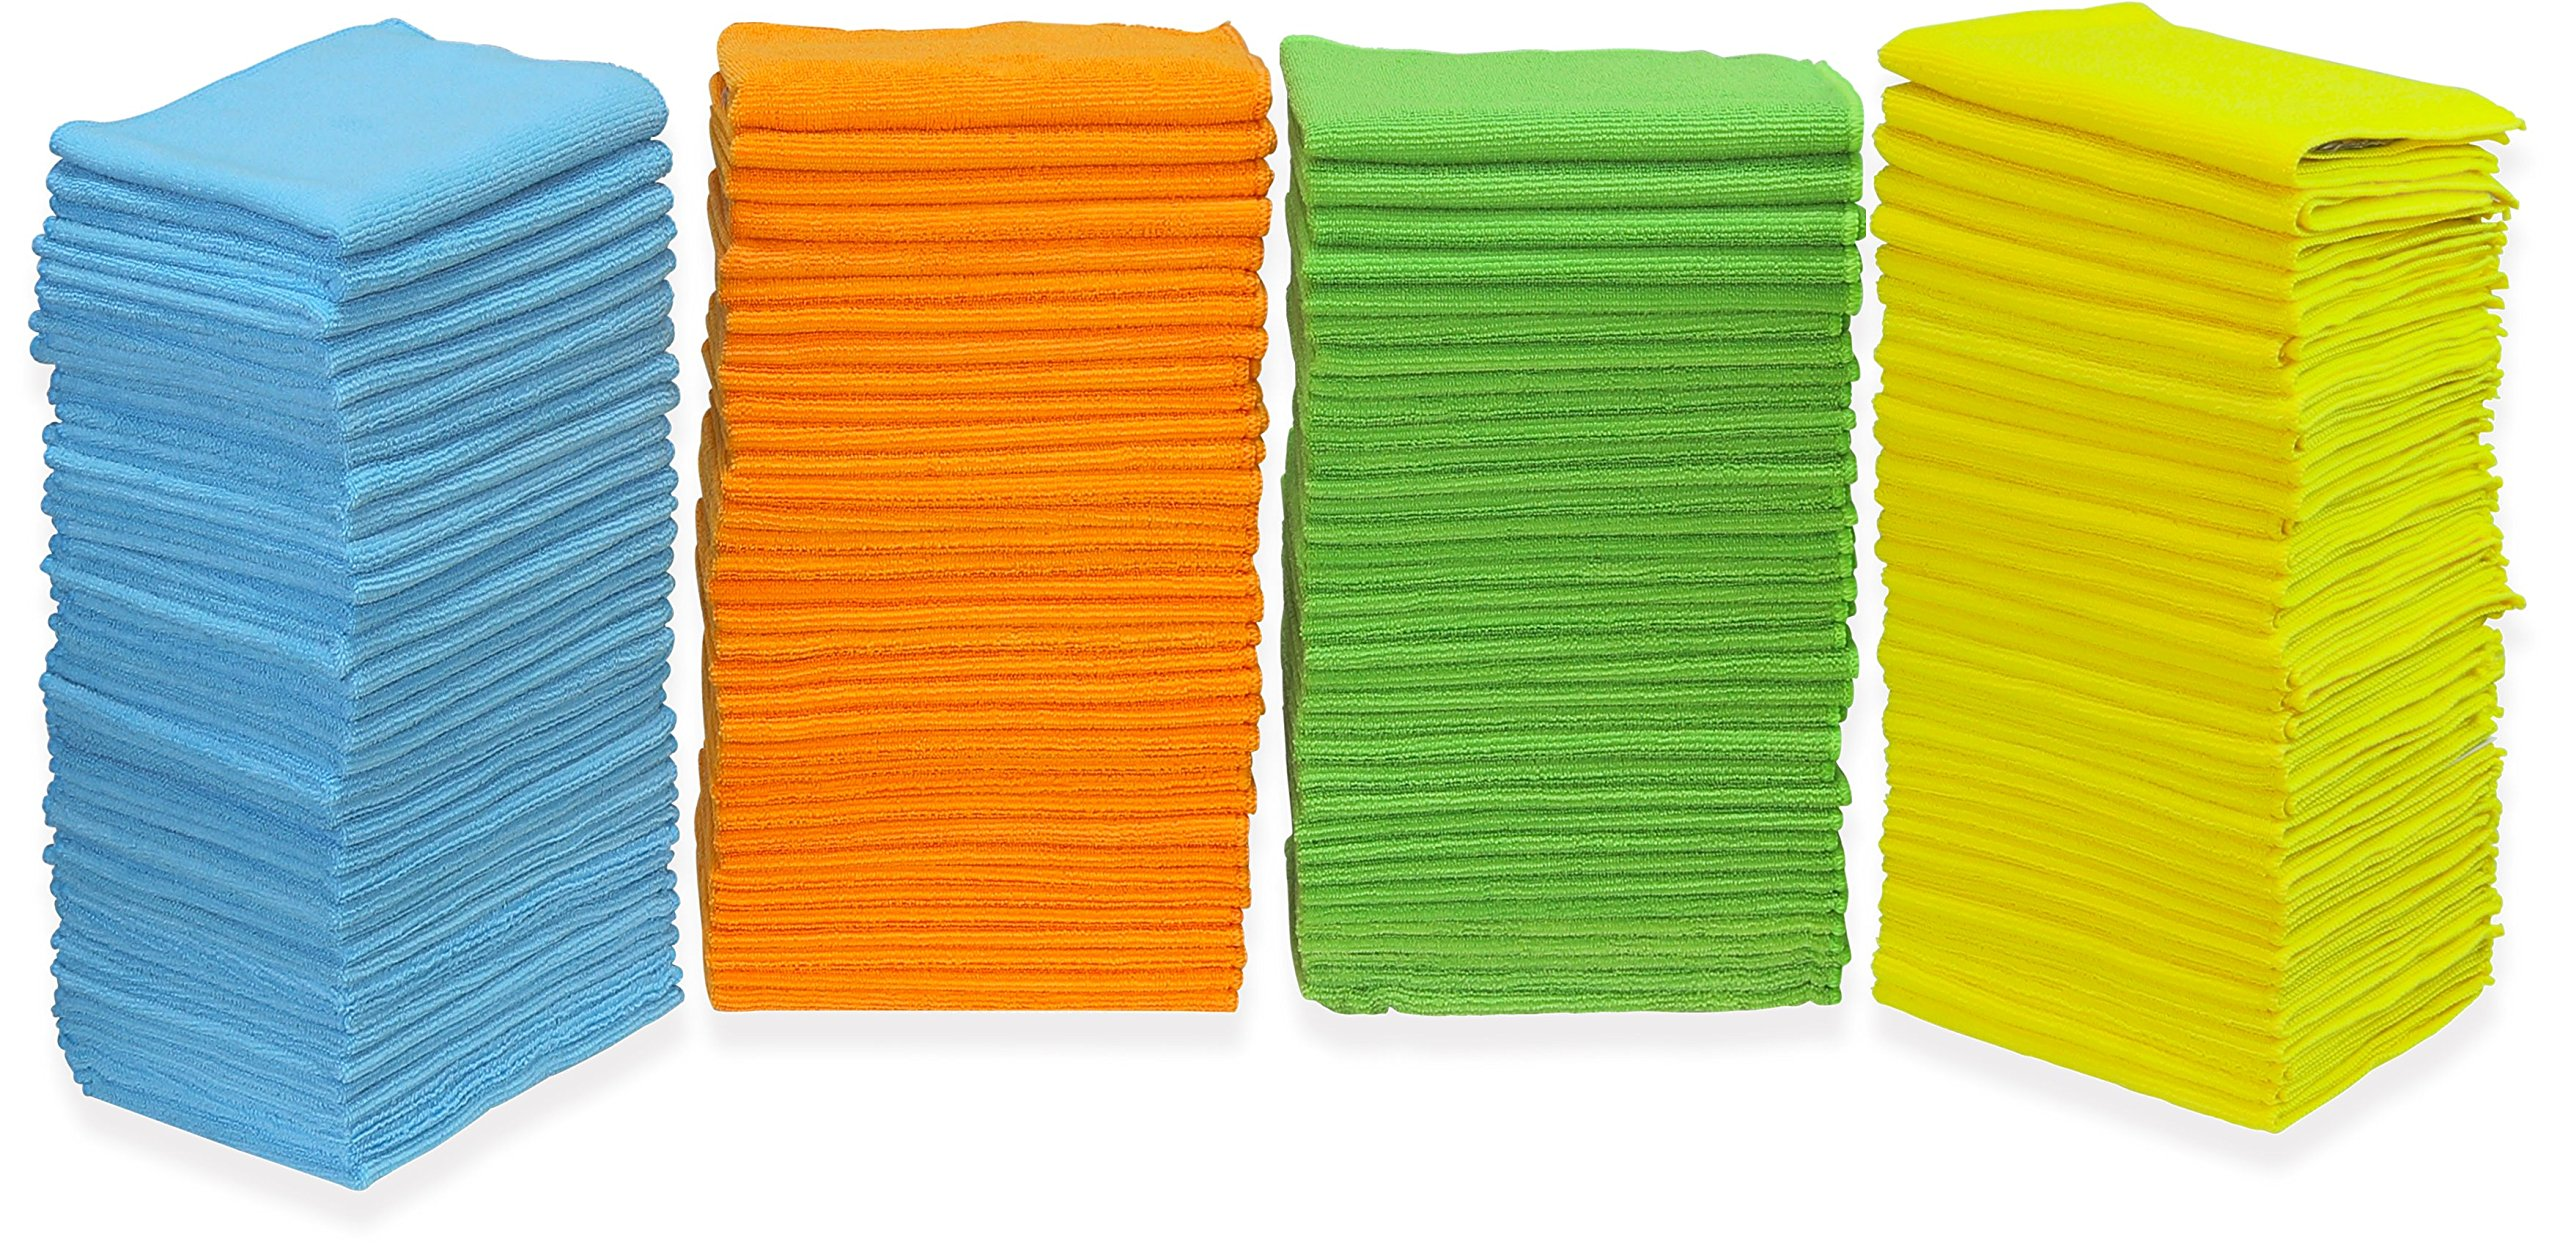 150 Pack - SimpleHouseware Microfiber Cleaning Cloth, 4 Colors by Simple Houseware